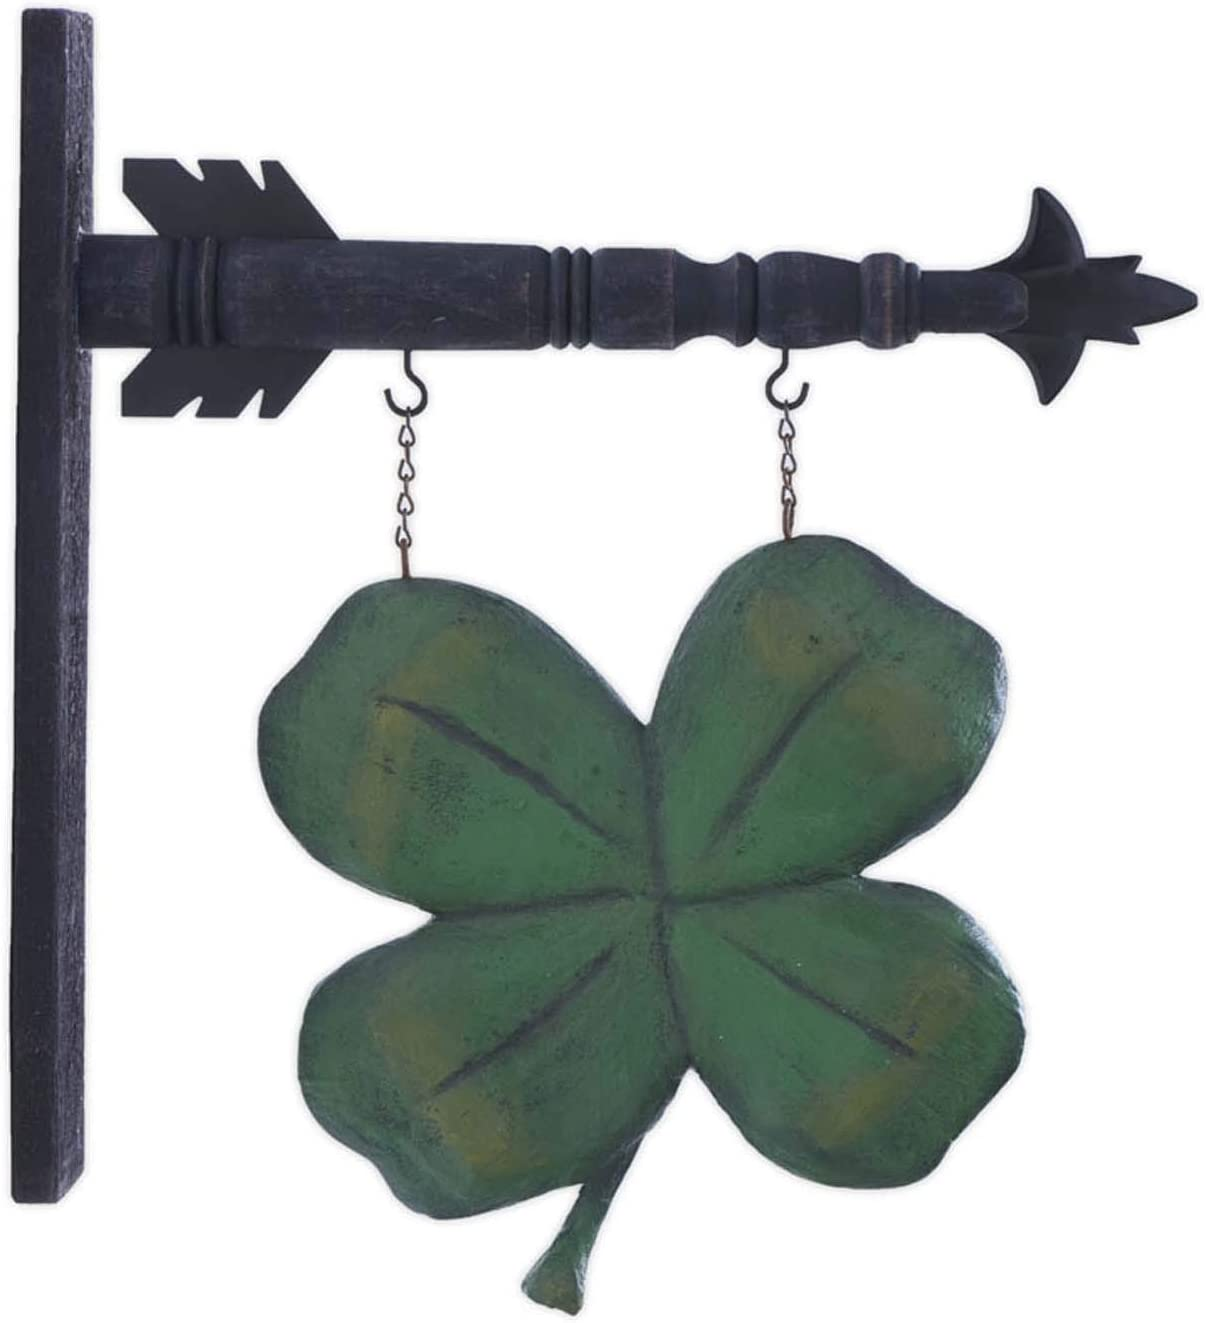 4-LEAF CLOVER-Replacement Sign by K /& K Interiors Resin Sign for Arrow Holders